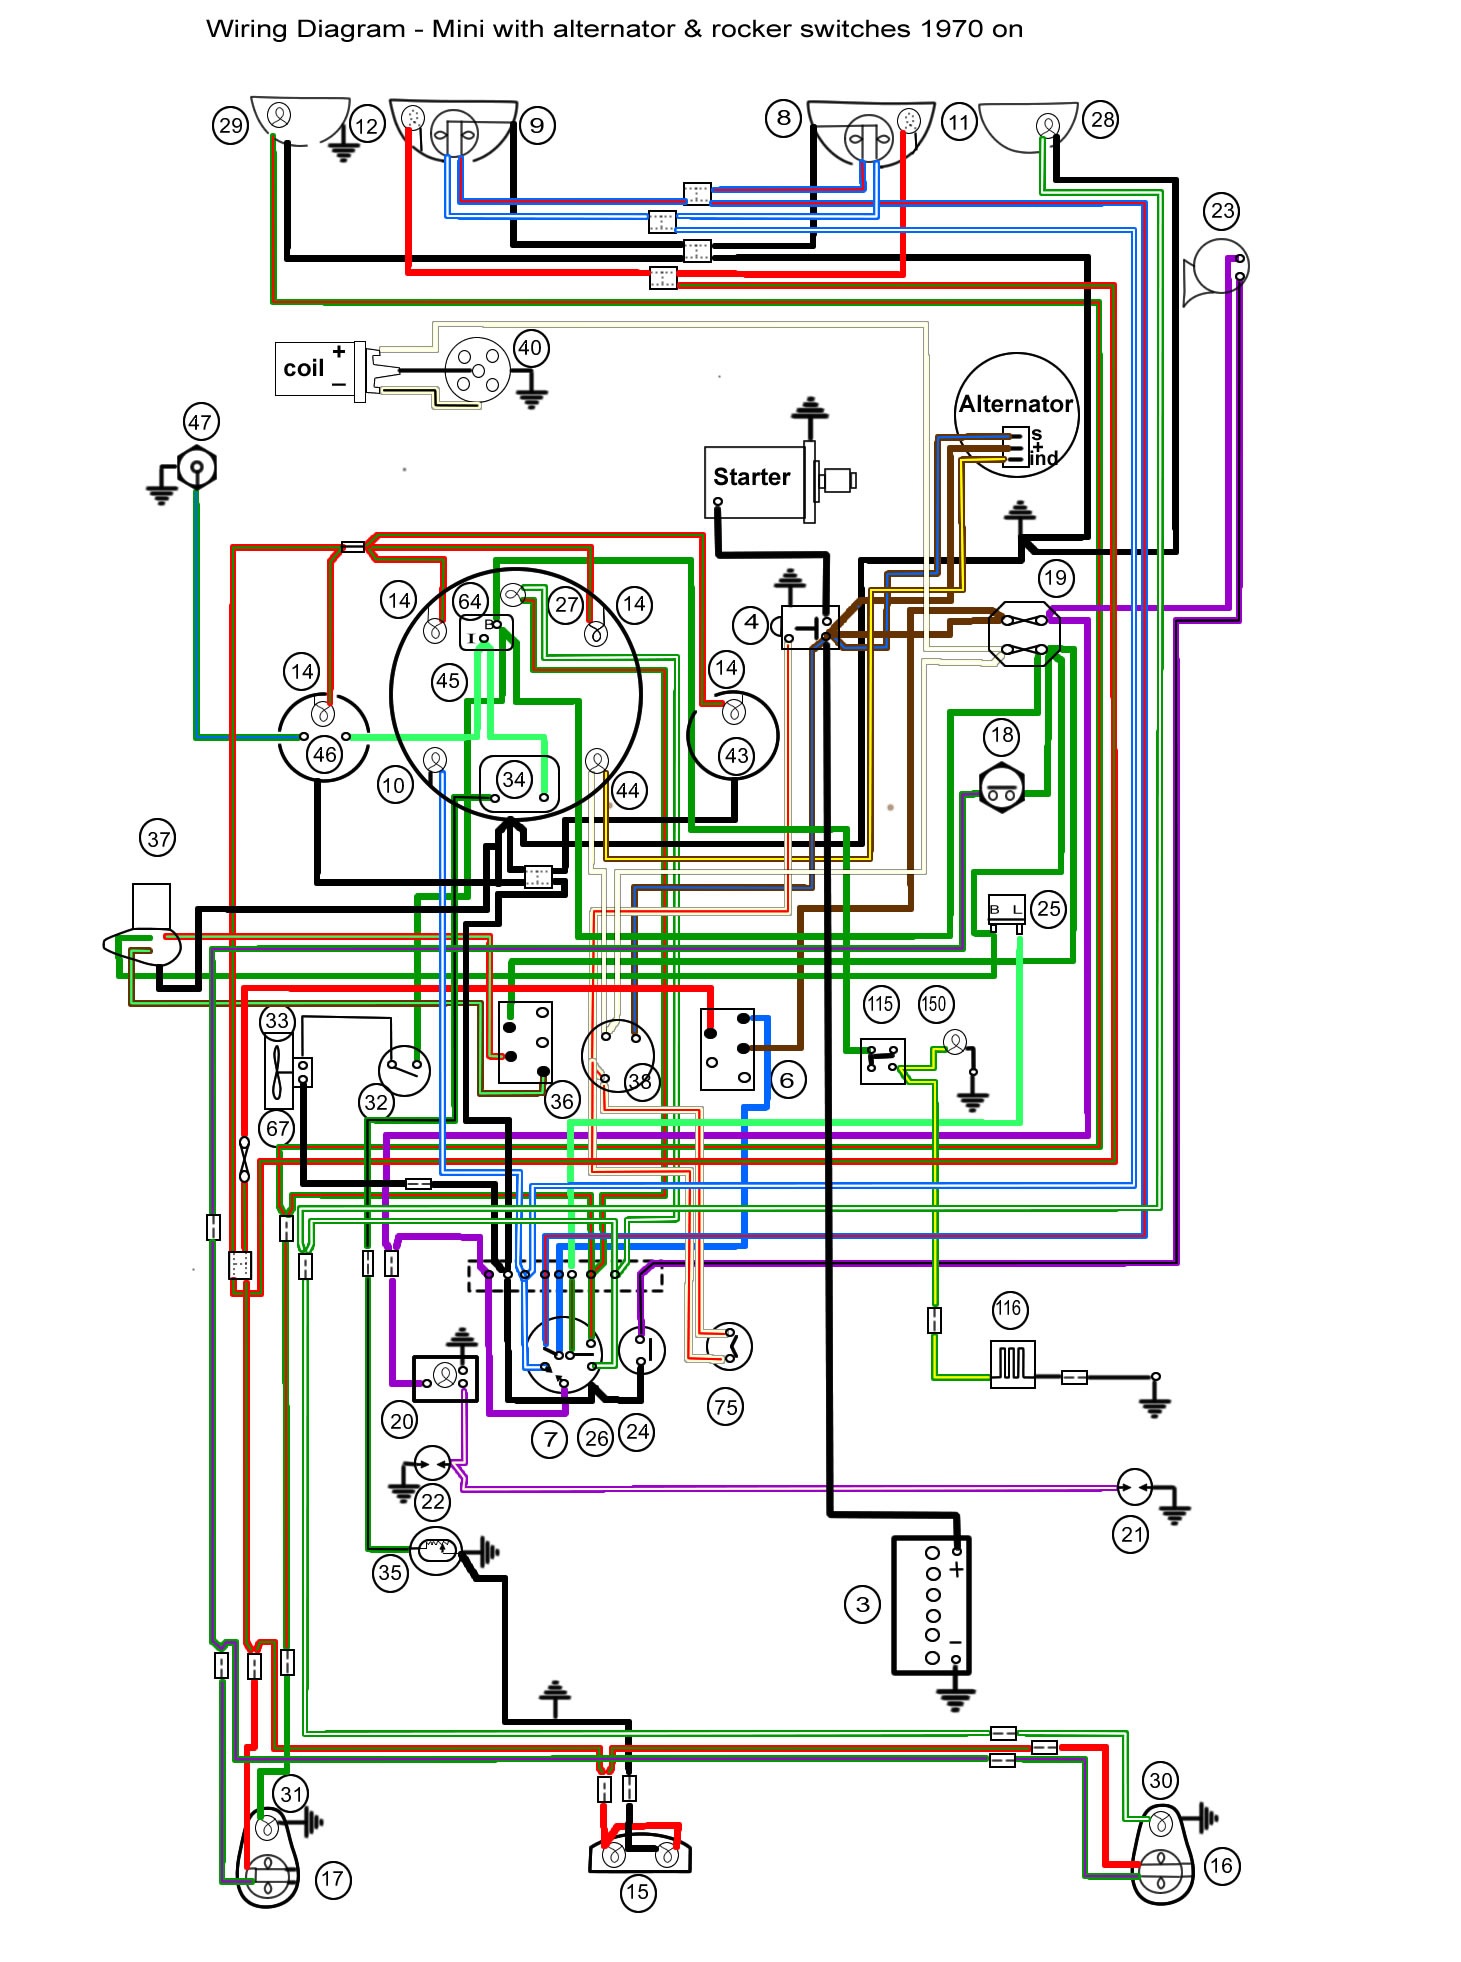 mini wiring diagram pdf mini wiring diagram pdf